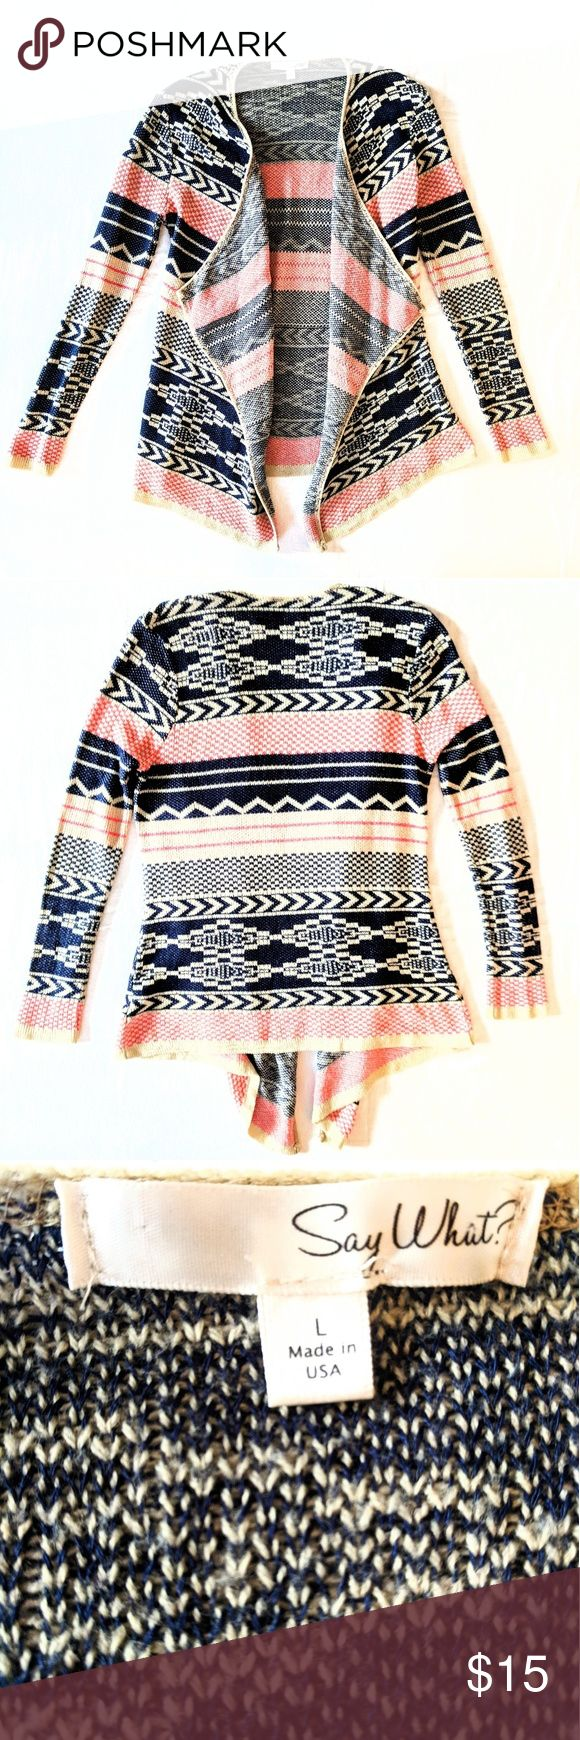 Aztec print cardigan This cardigan is a fun navy, coral and cream colored print. Barely worn and in mint condition. It doesn't have buttons, but it drapes in the front and looks very pretty layered.  Note: Although it is a large, the sleeves seem to be a little tight at the top but the material is stretchy and forgiving Say What? Sweaters Cardigans